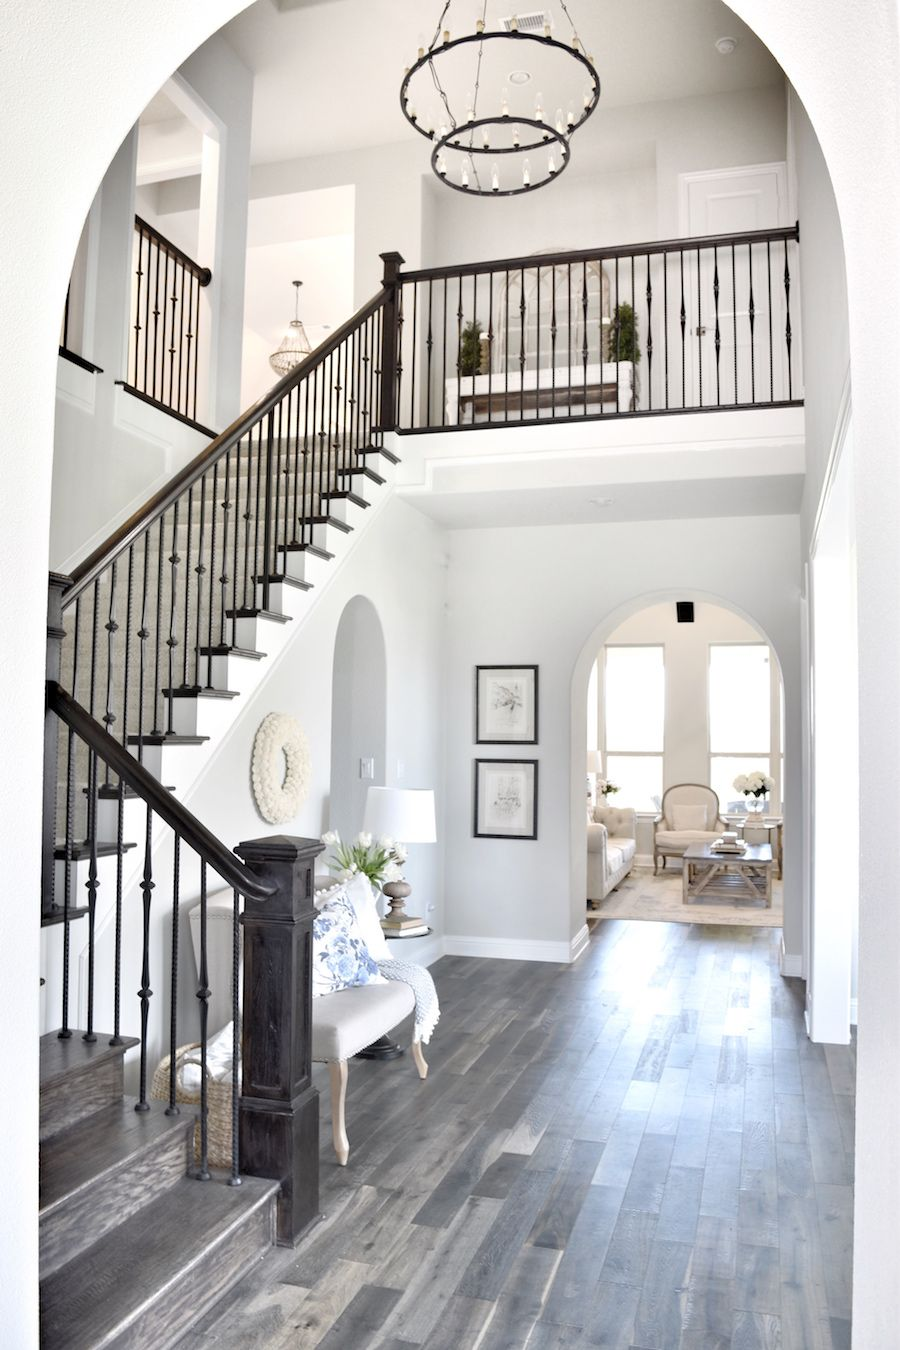 Home interior railings tour this refined and fresh family home in dallas  dallas spaces